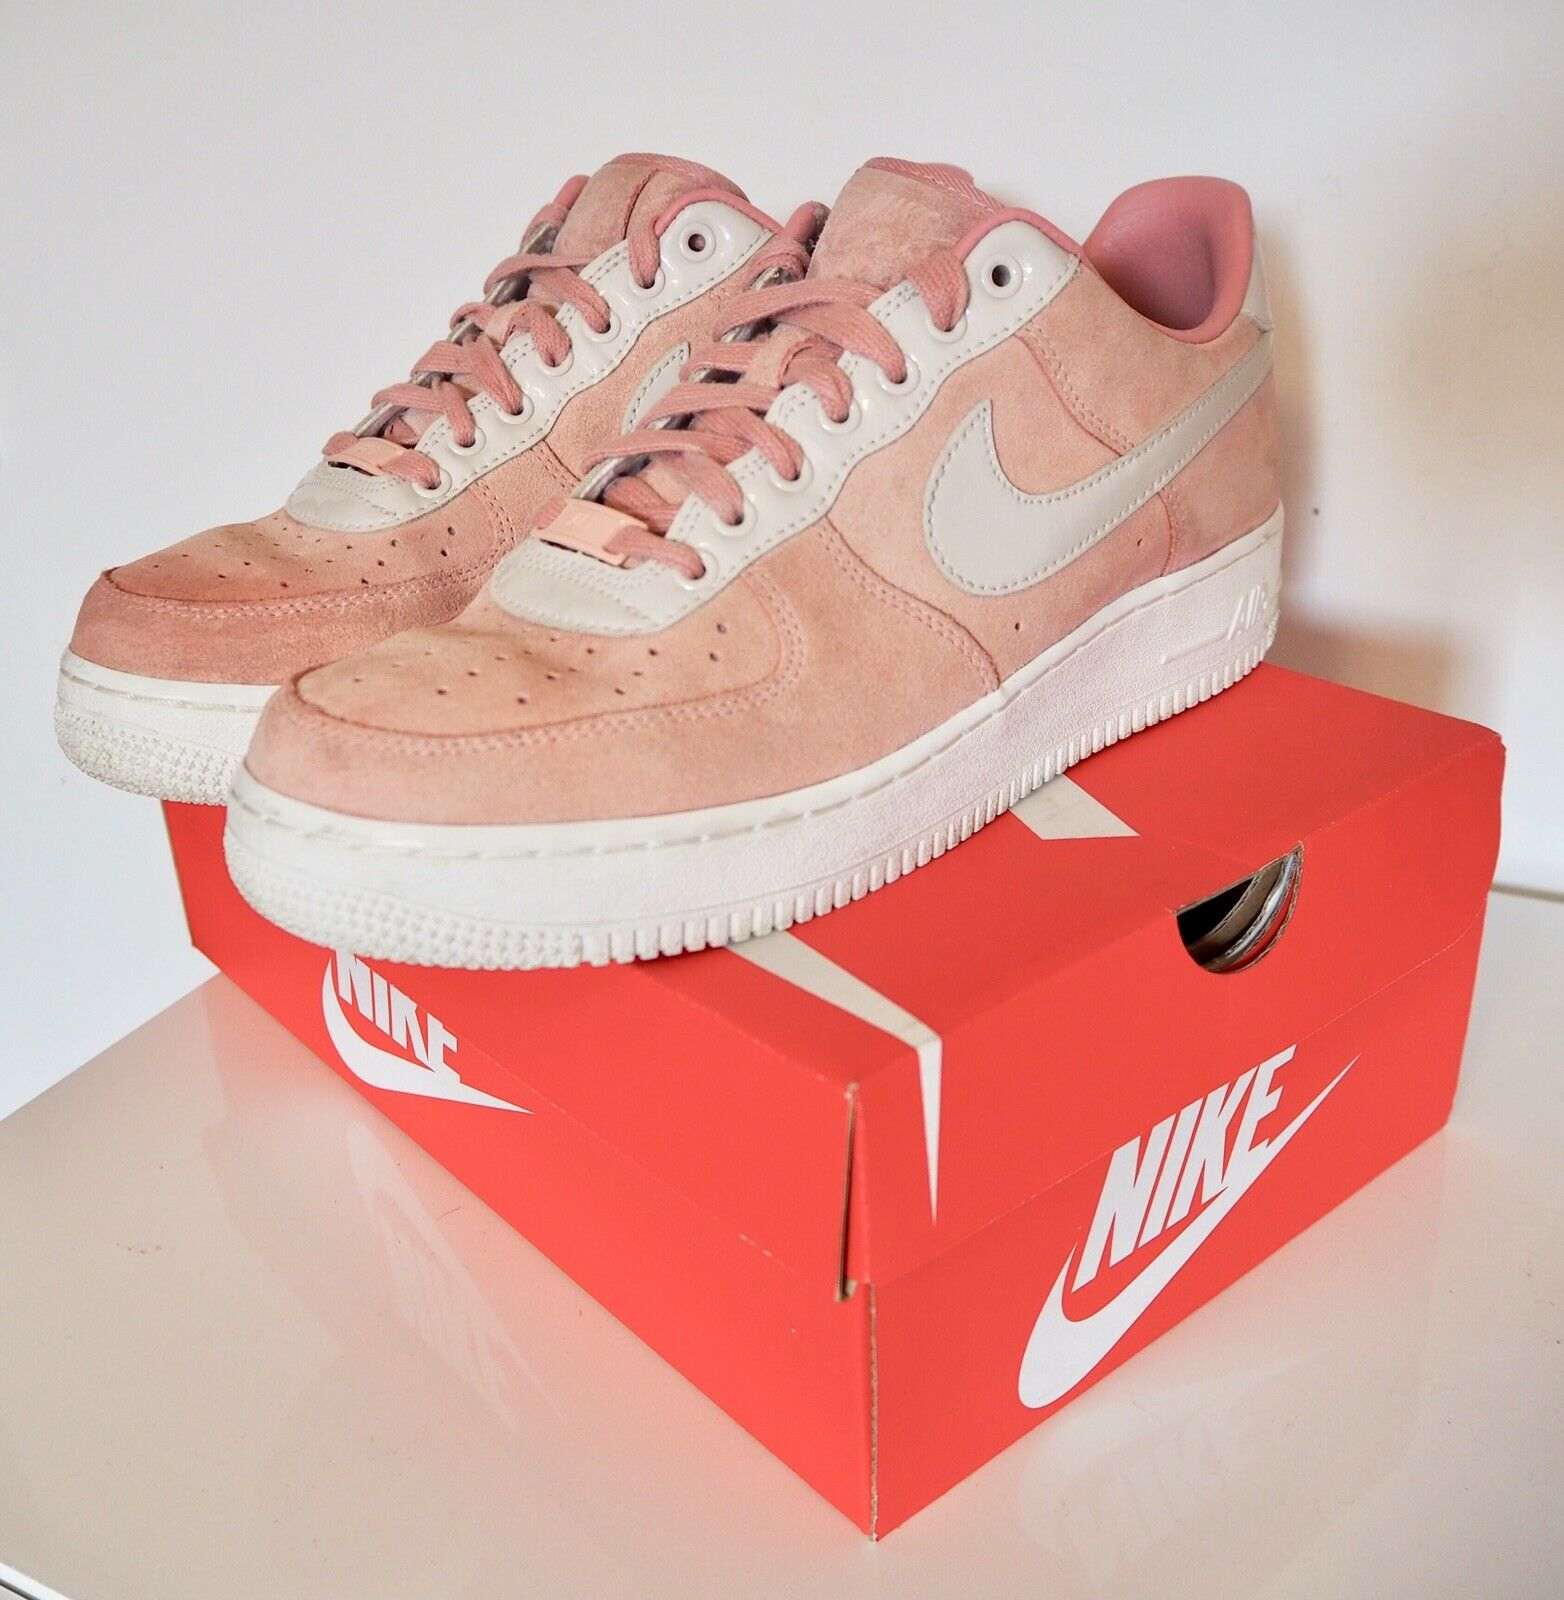 NIKE Air Force chaussures femmes 42 Come Nuove NIKE ID ORIGINALI